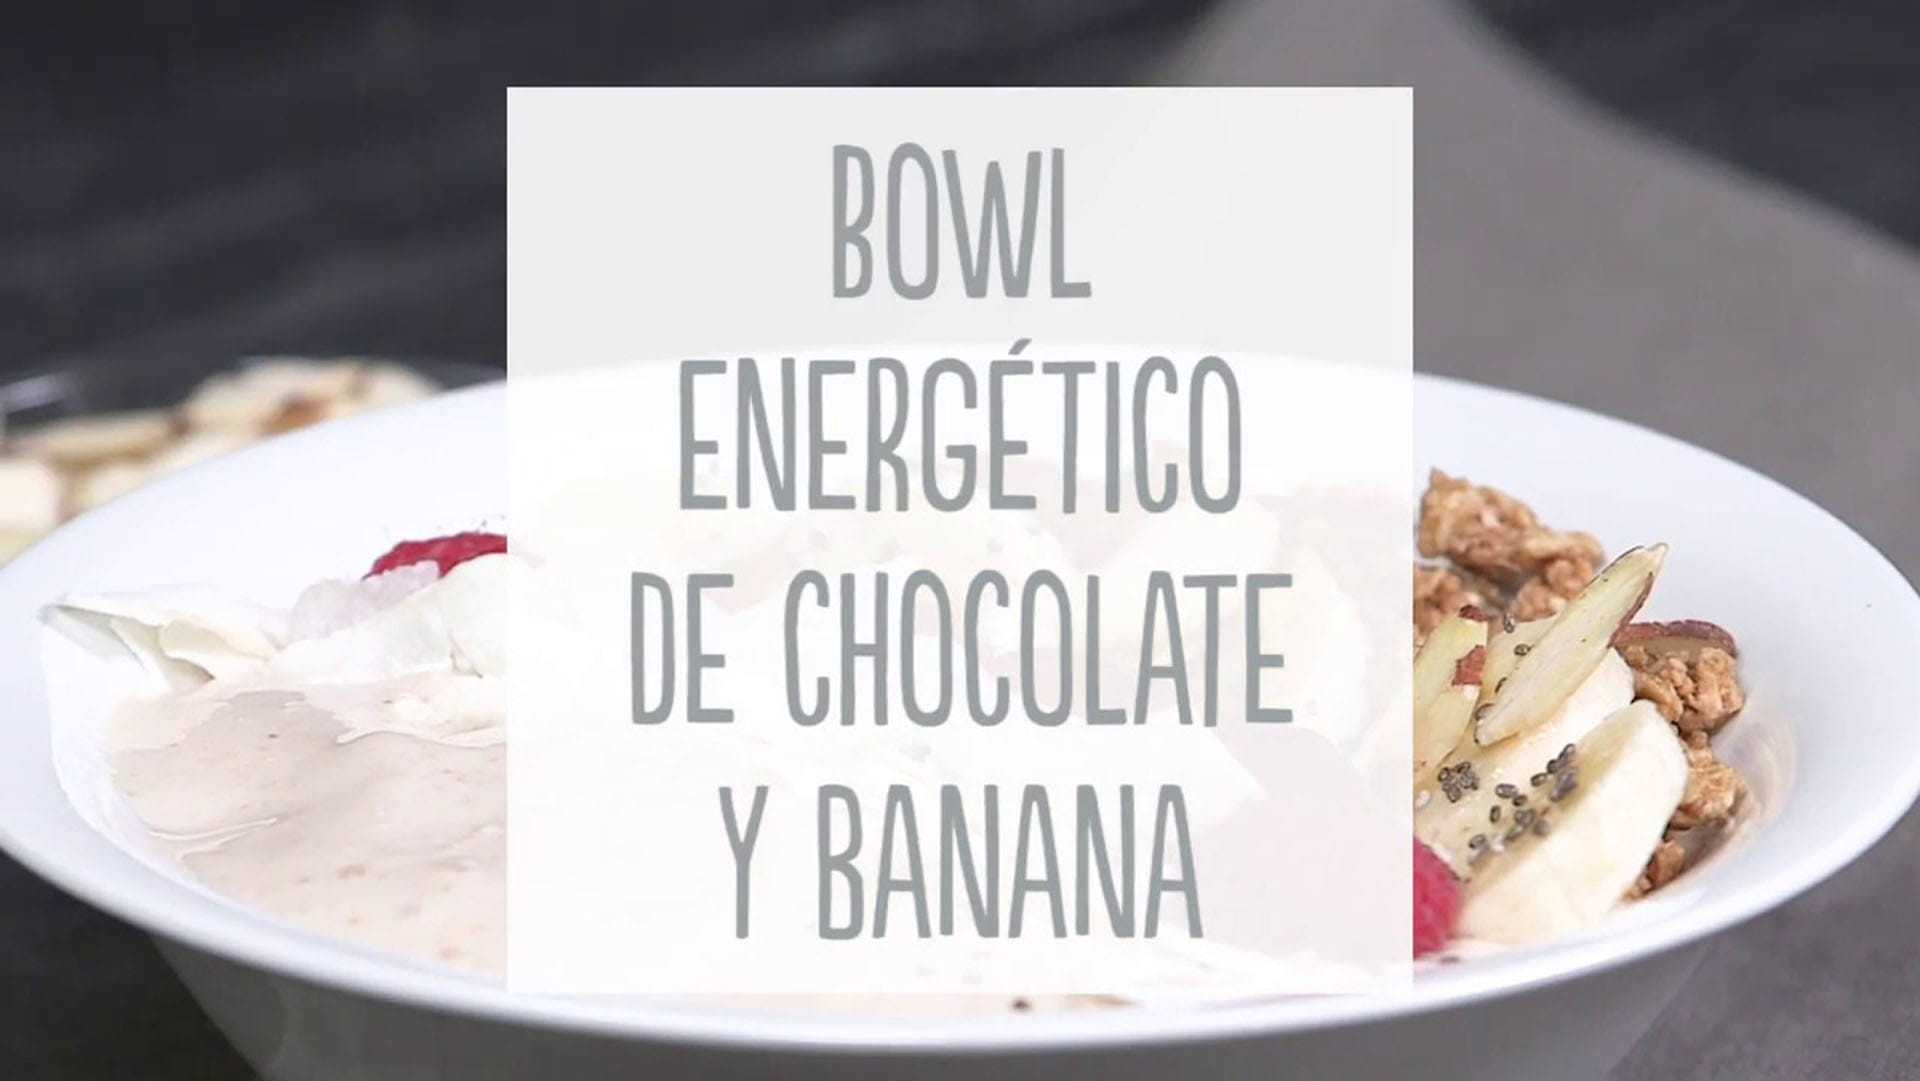 Bowl energético de chocolate y banana